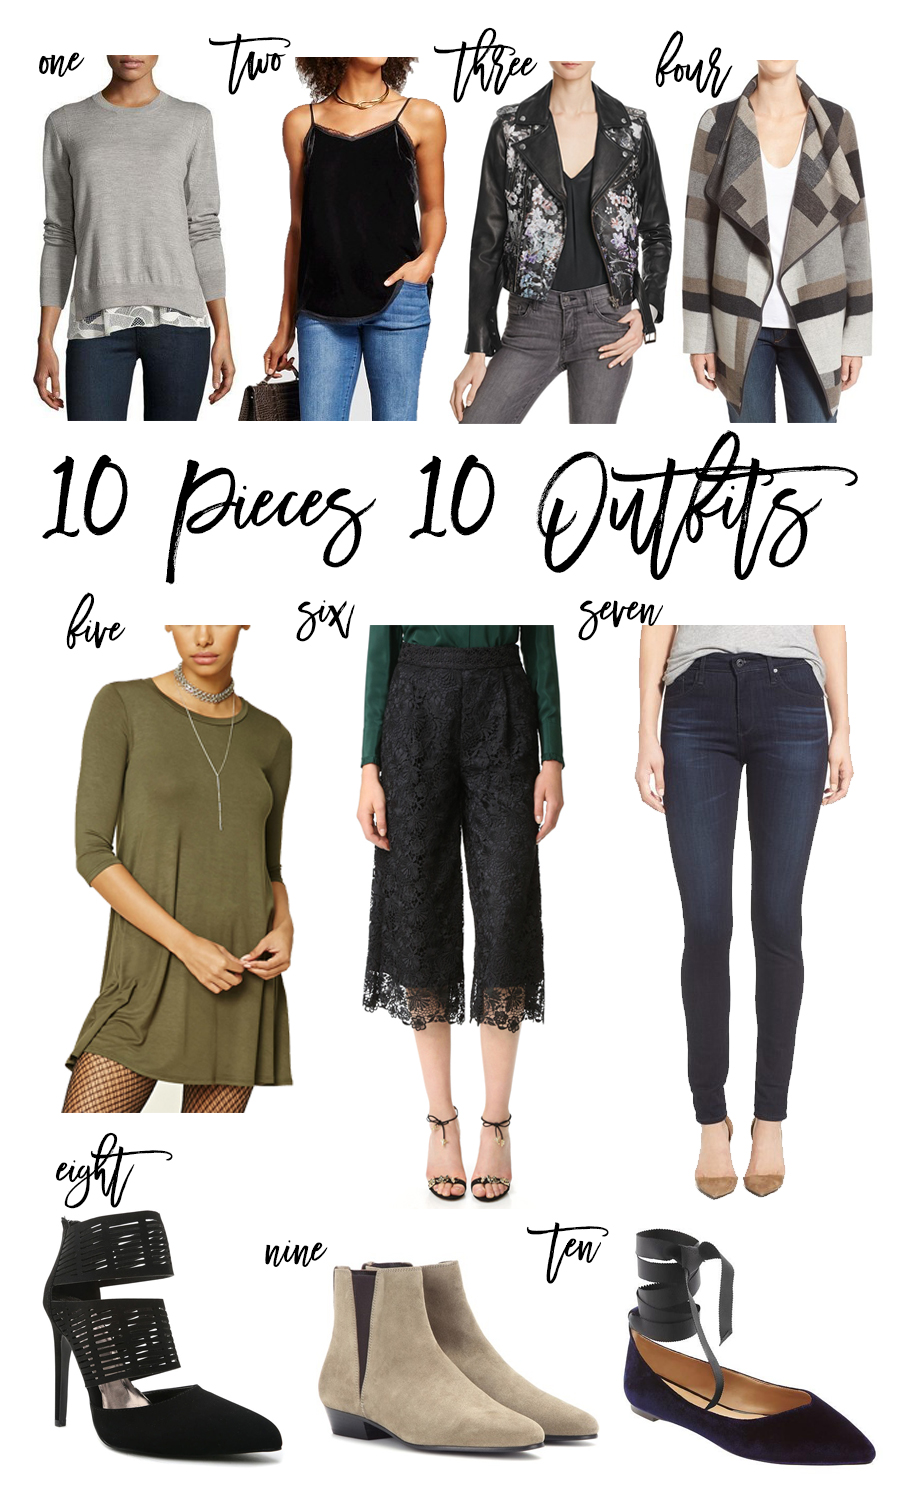 ten-pieces-ten-outfits-capsule-wardrobe-have-need-want